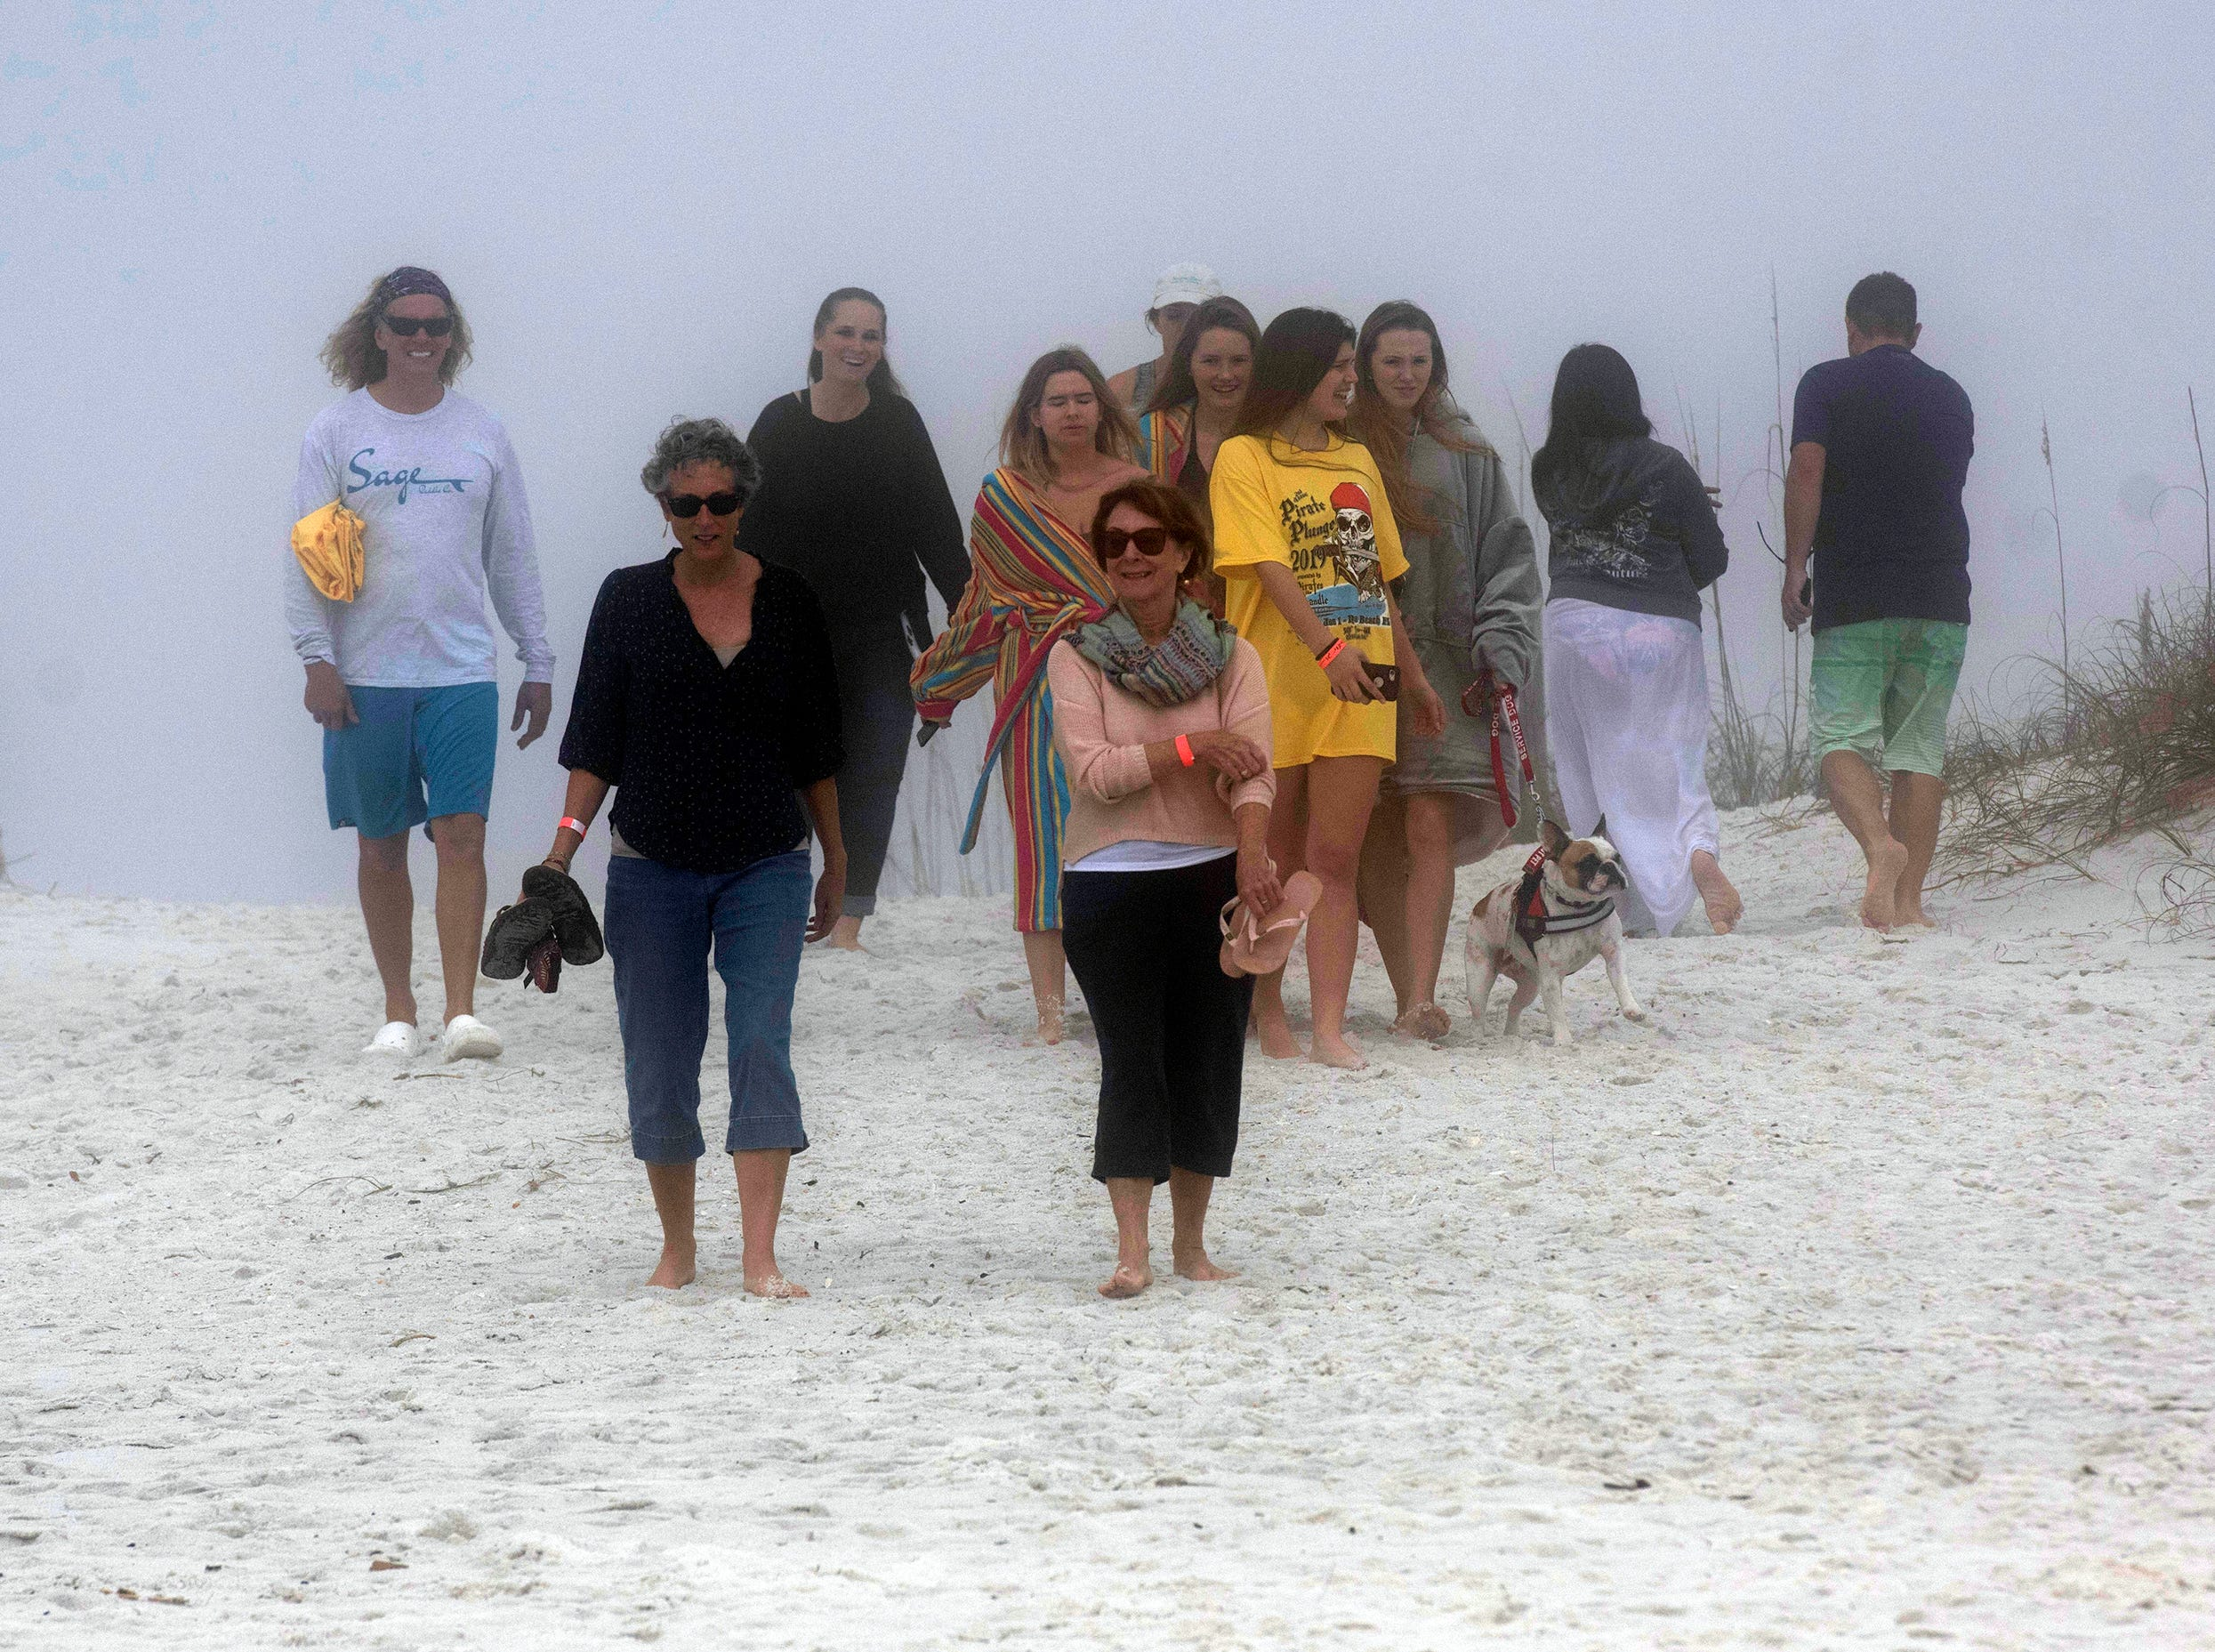 """Hundreds of thrill seekers all ages gathered on a foggy Navarre Beach Tuesday, Jan. 1, 2019 to take part in the 2nd annual Pirate Plunge. The New Year's Day activity put on by the Pirates of the Panhandle Social Club drew an estimated crowd over 450 people, organizer, """"Jersey"""" Jerry Foster said. The event benefits the Weekend Food Program of Navarre."""